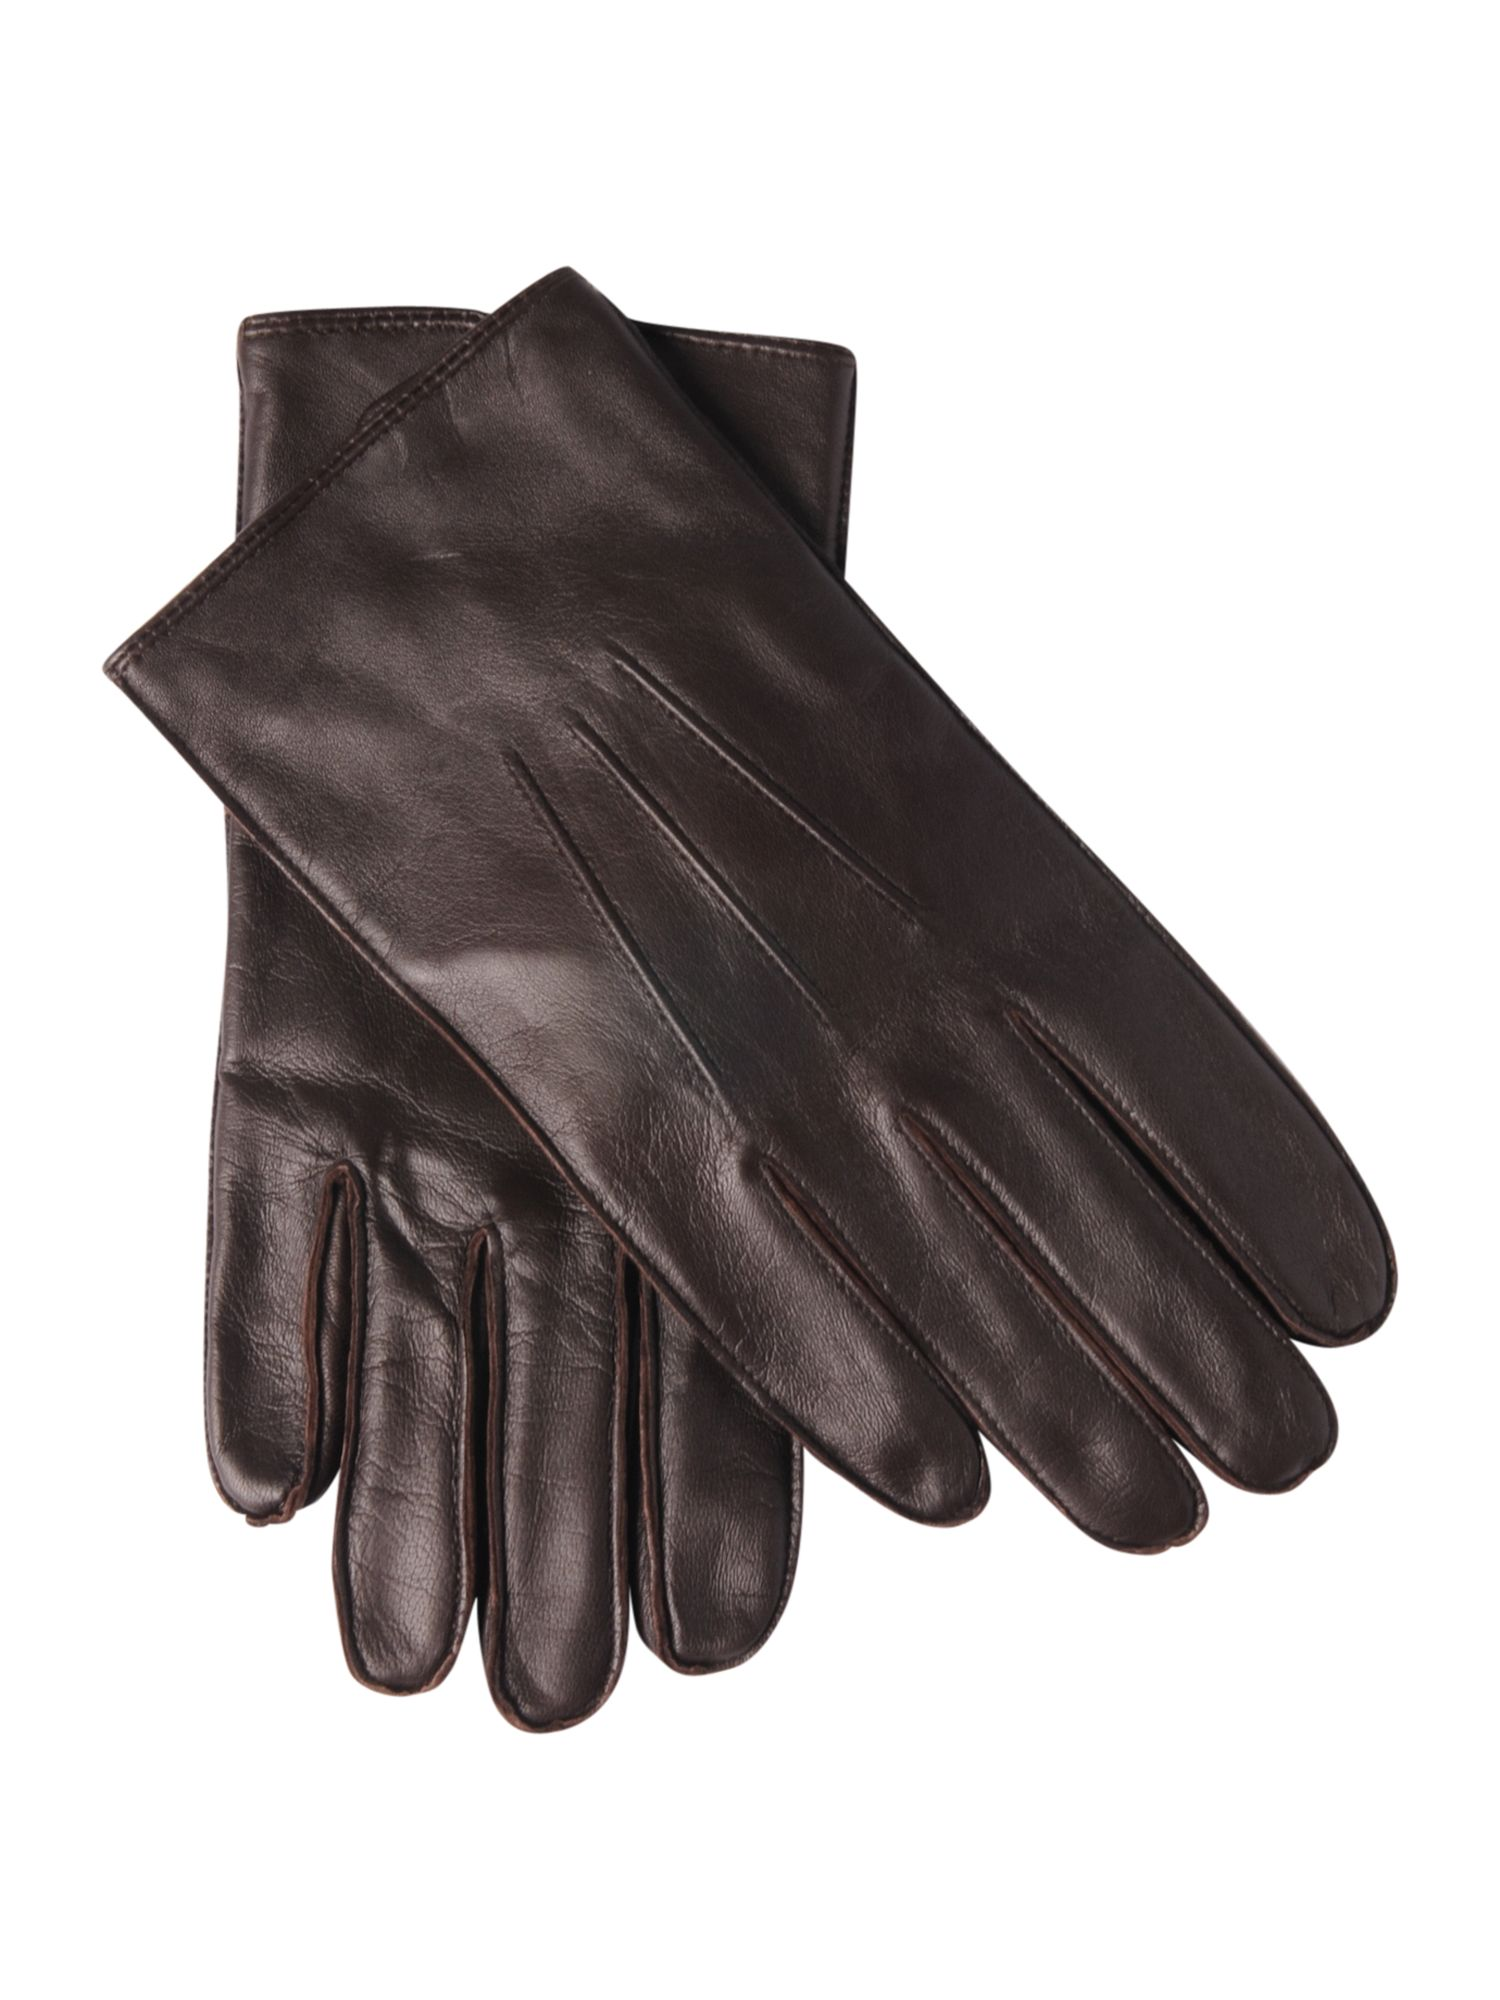 3 point leather gloves